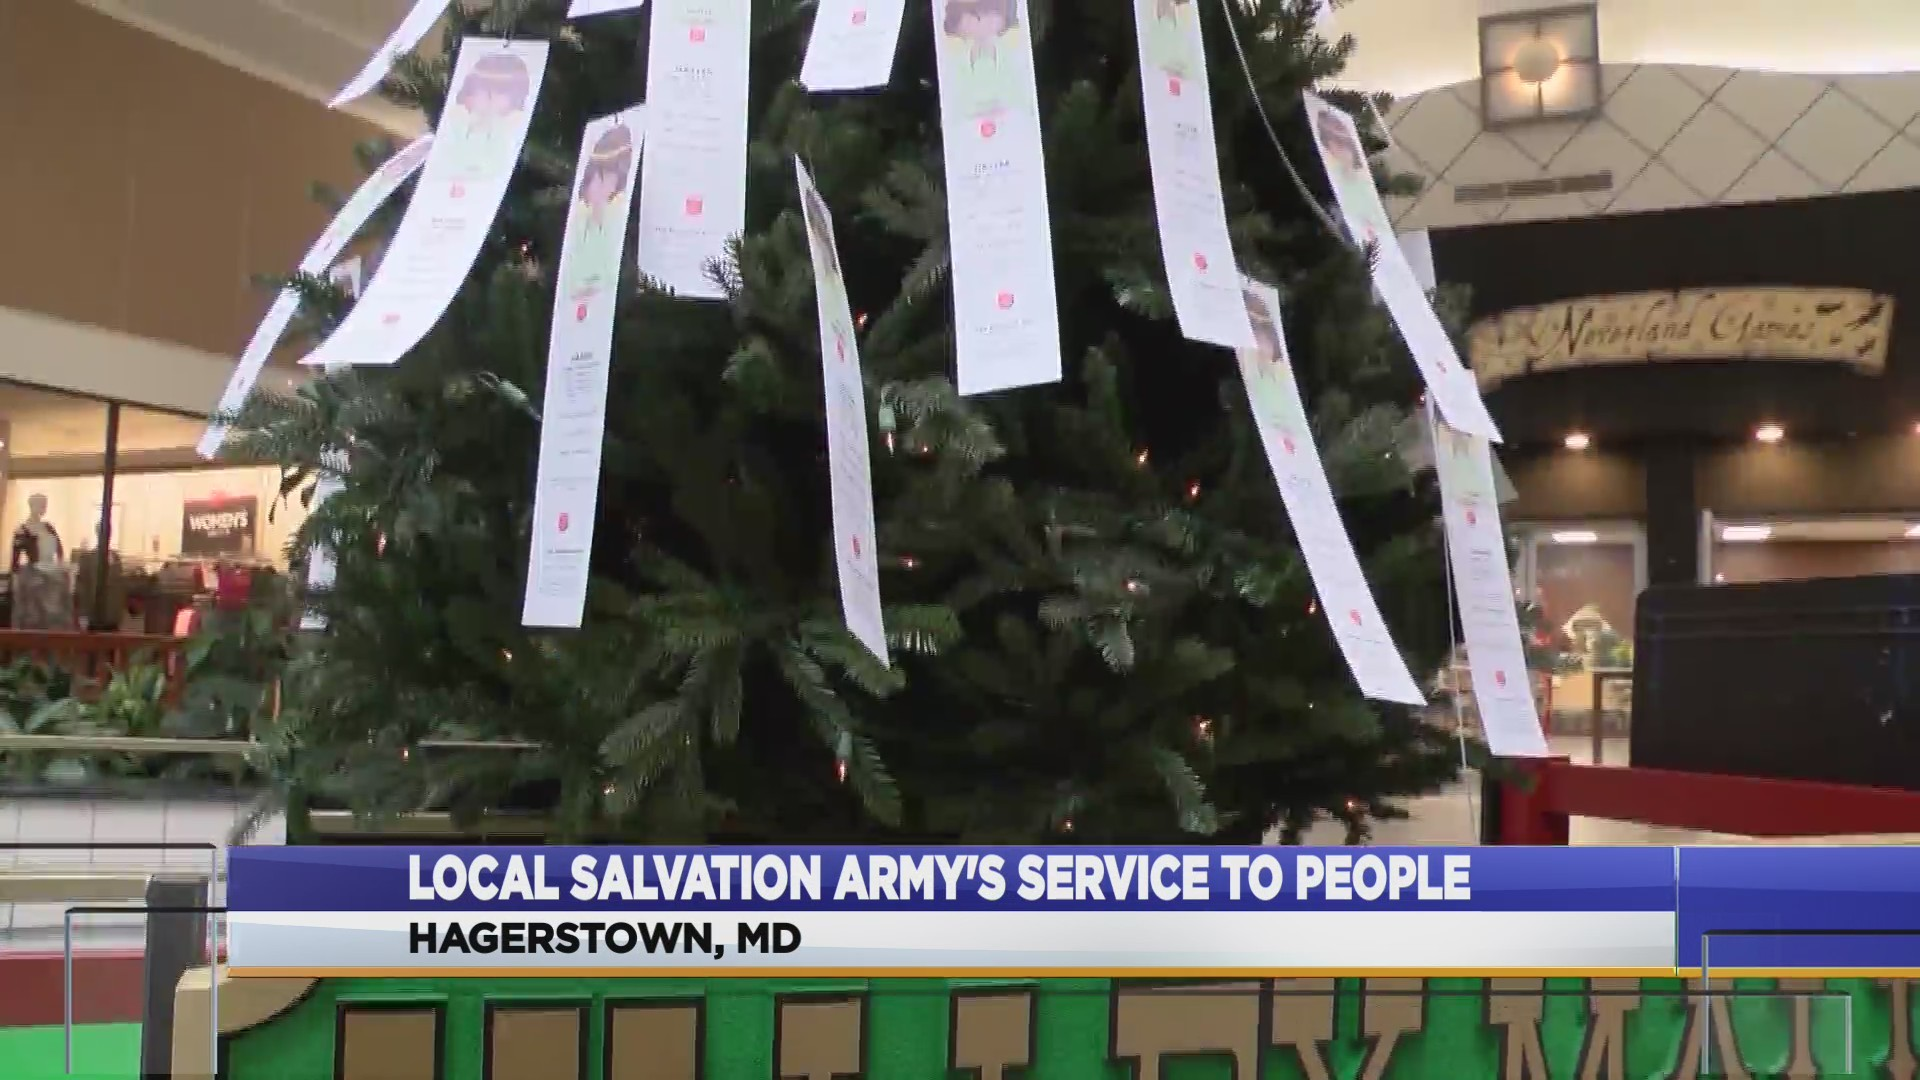 Hagerstown_salvation_army_0_20190125222326